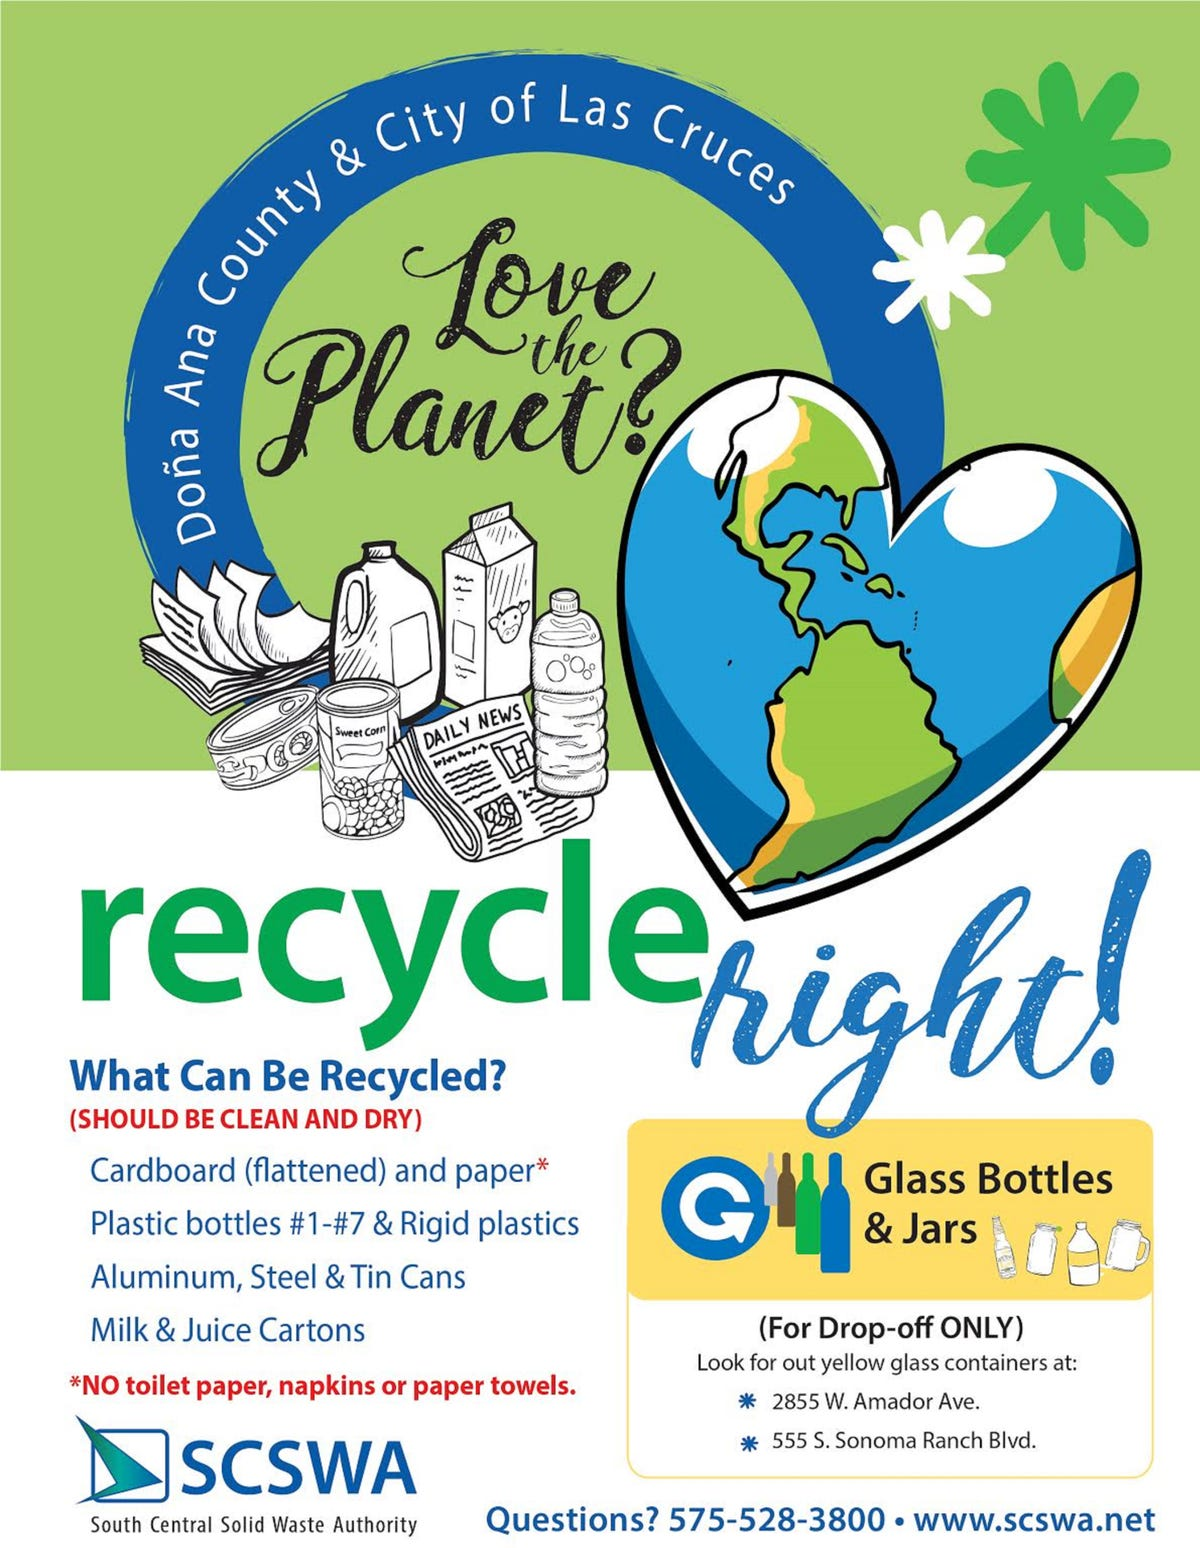 New recycling rules: What can and can't be recycled in Las Cruces?